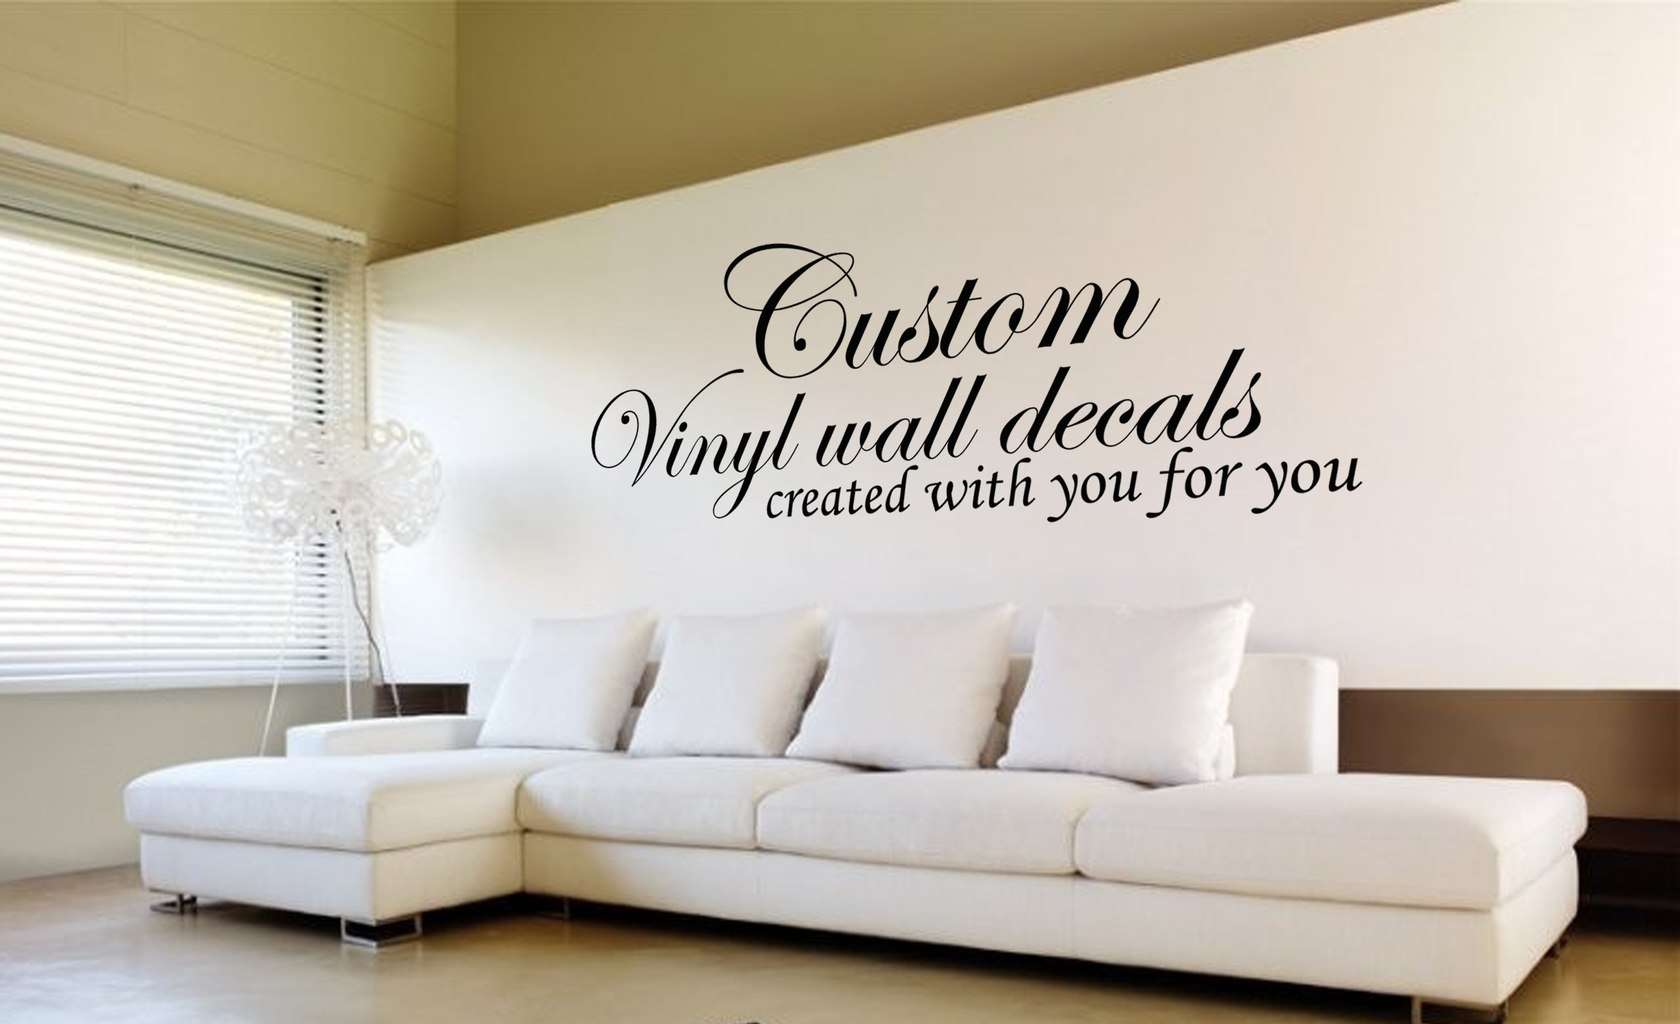 Design Your Own Quote Custom Wall Art Decal Sticker - Make your own decal for walls